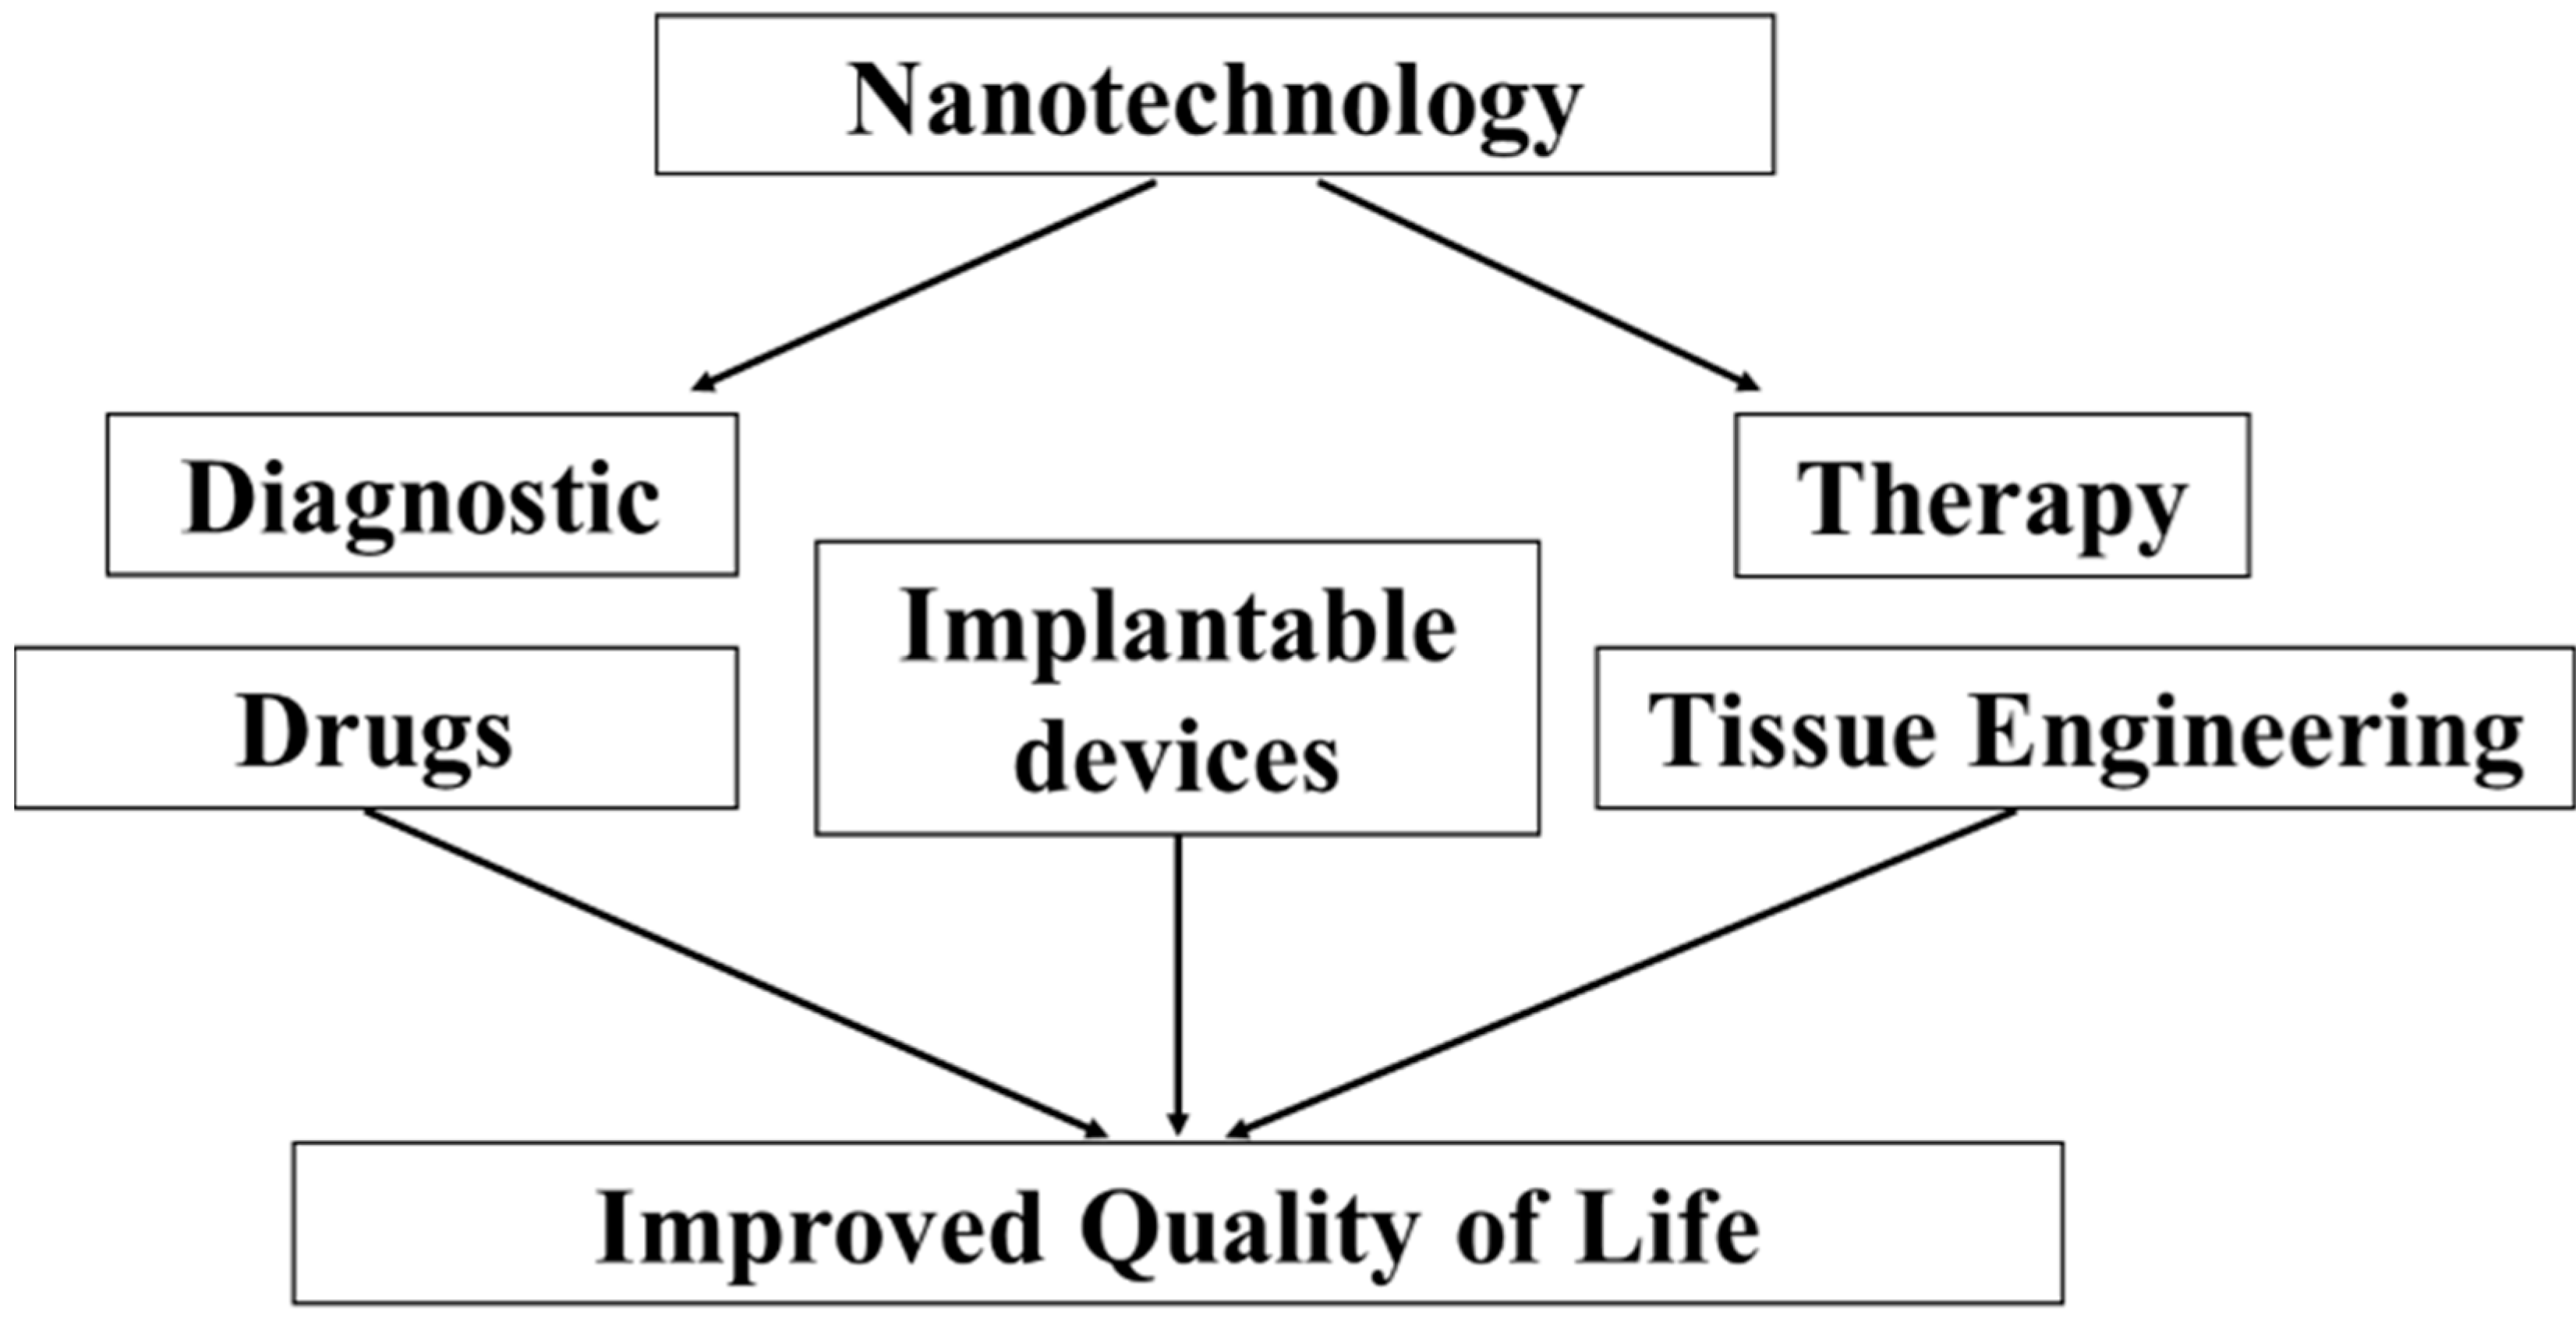 biomedicines full text nanomaterials tools technology biomedicines 03 00203 g001 1024